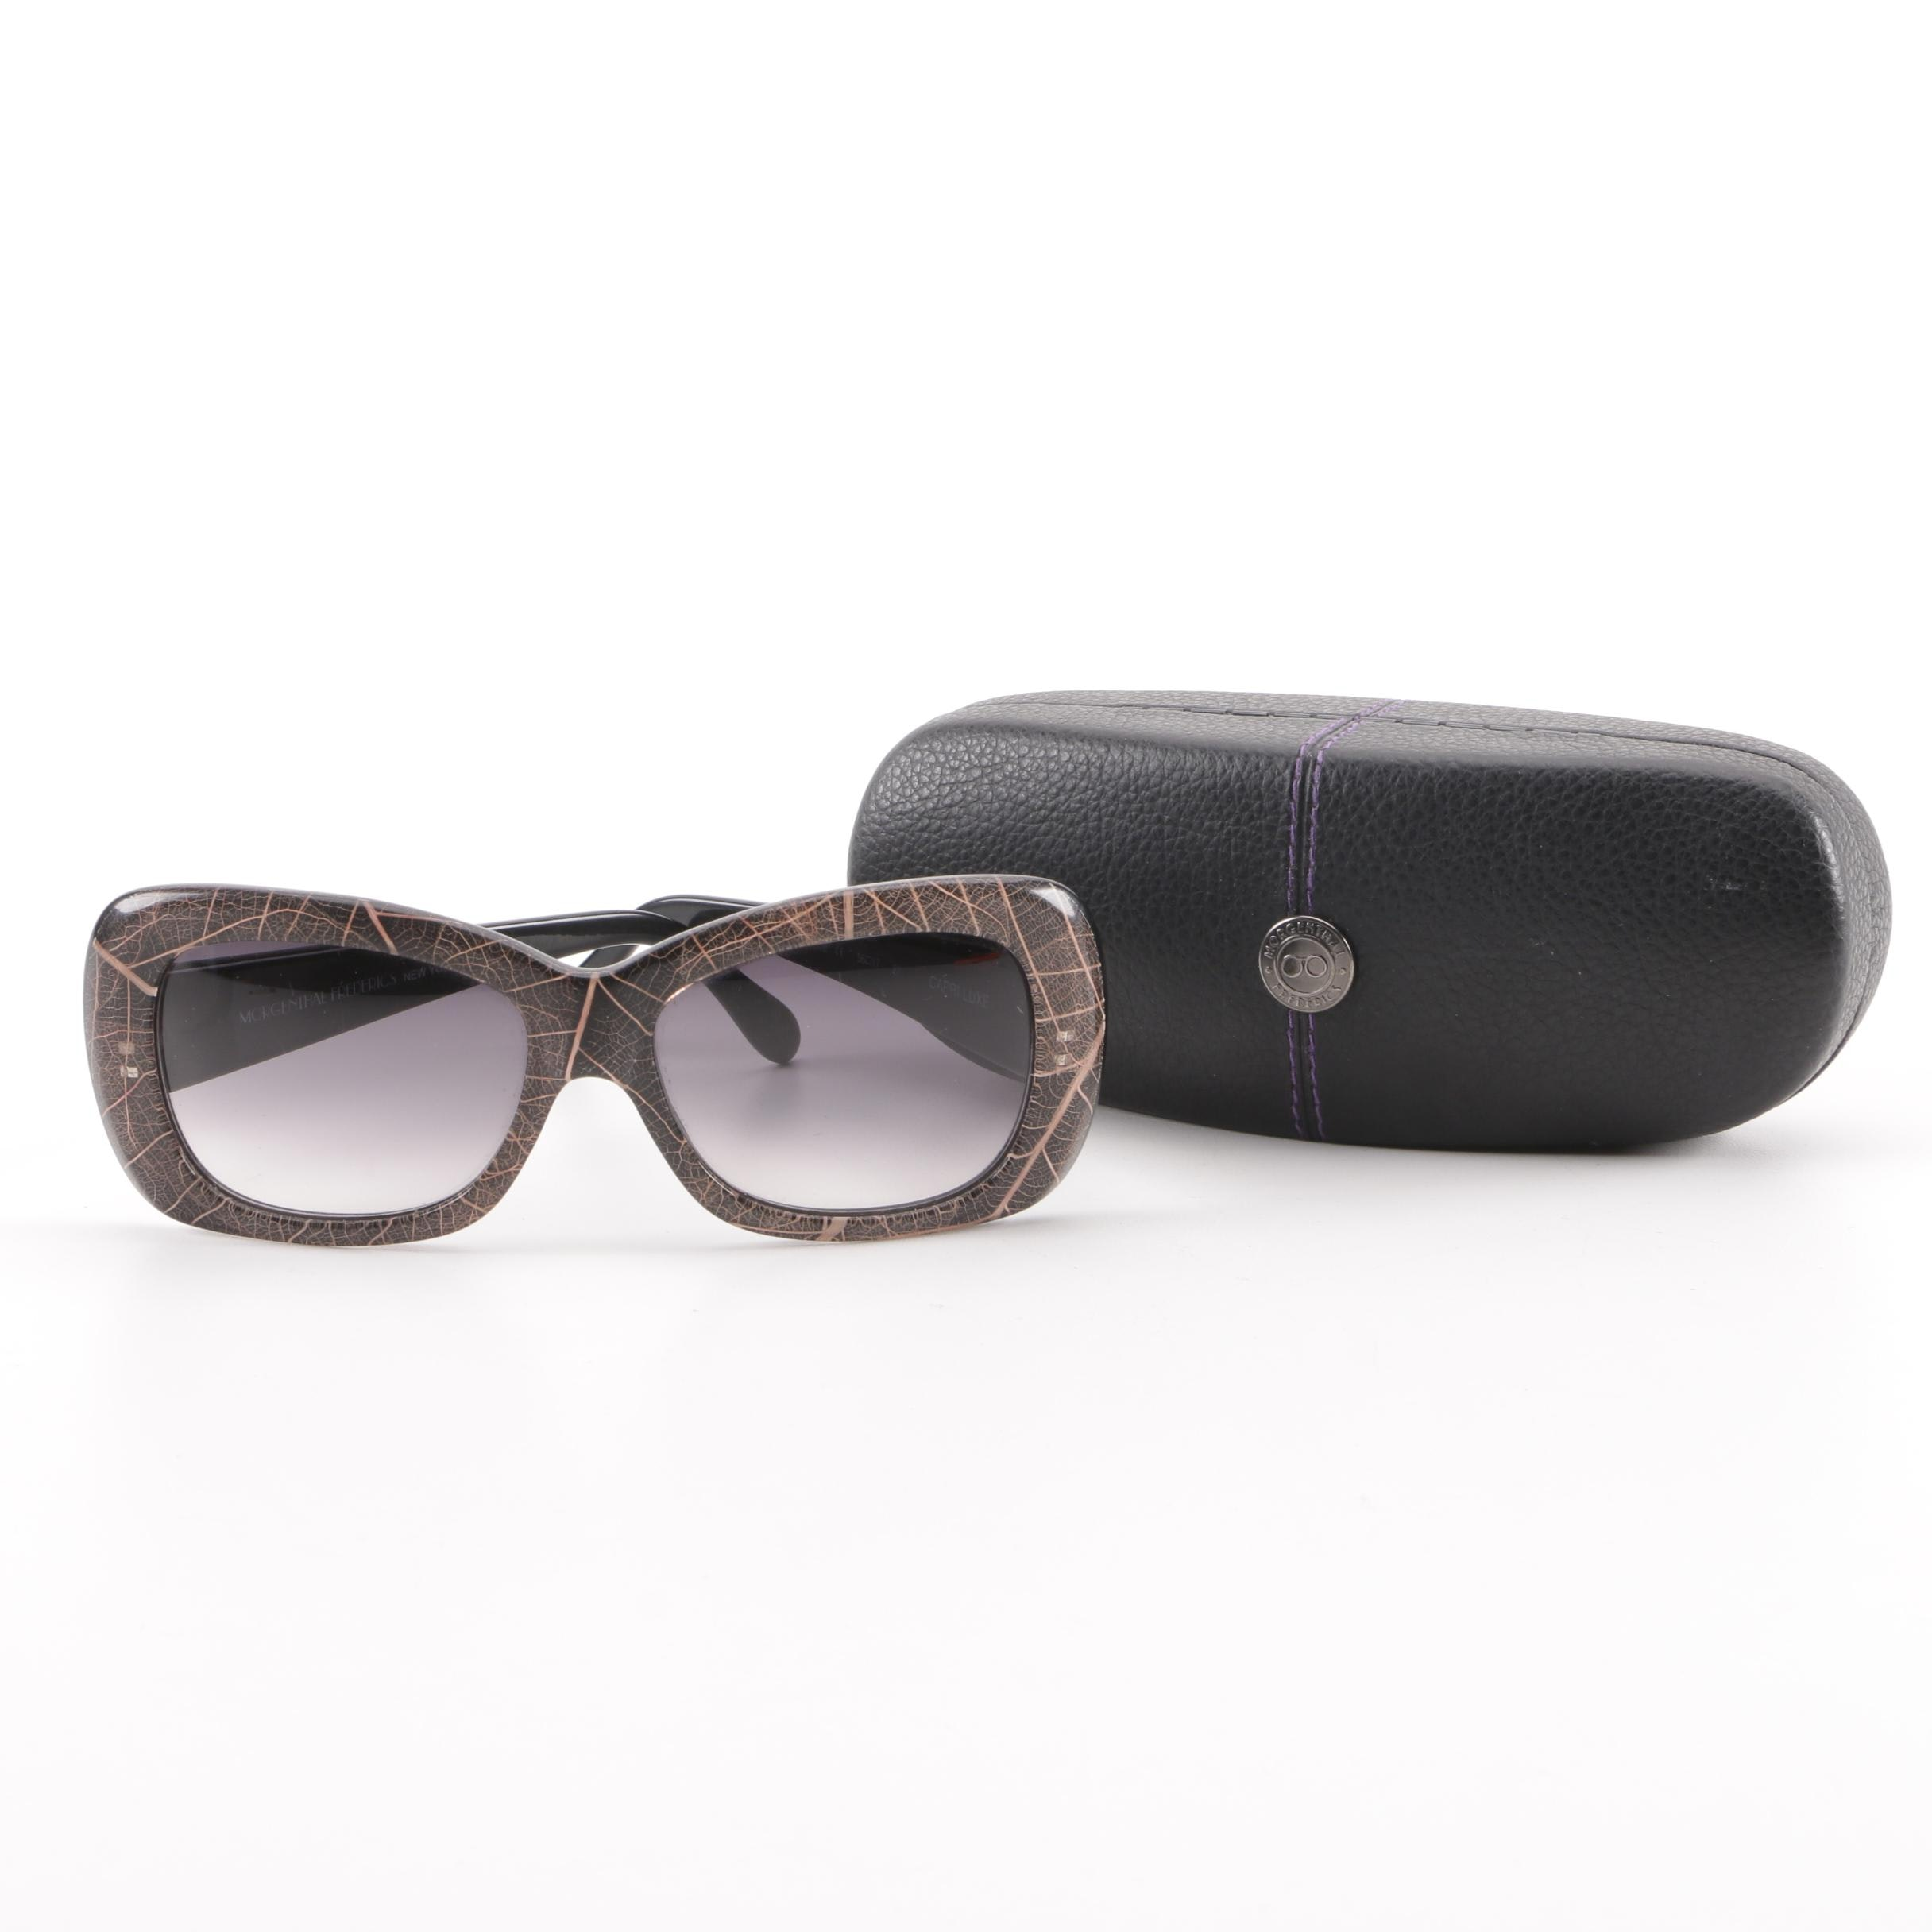 Morgenthal Frederics Capri Luxe Sunglasses with Case, Handmade in France